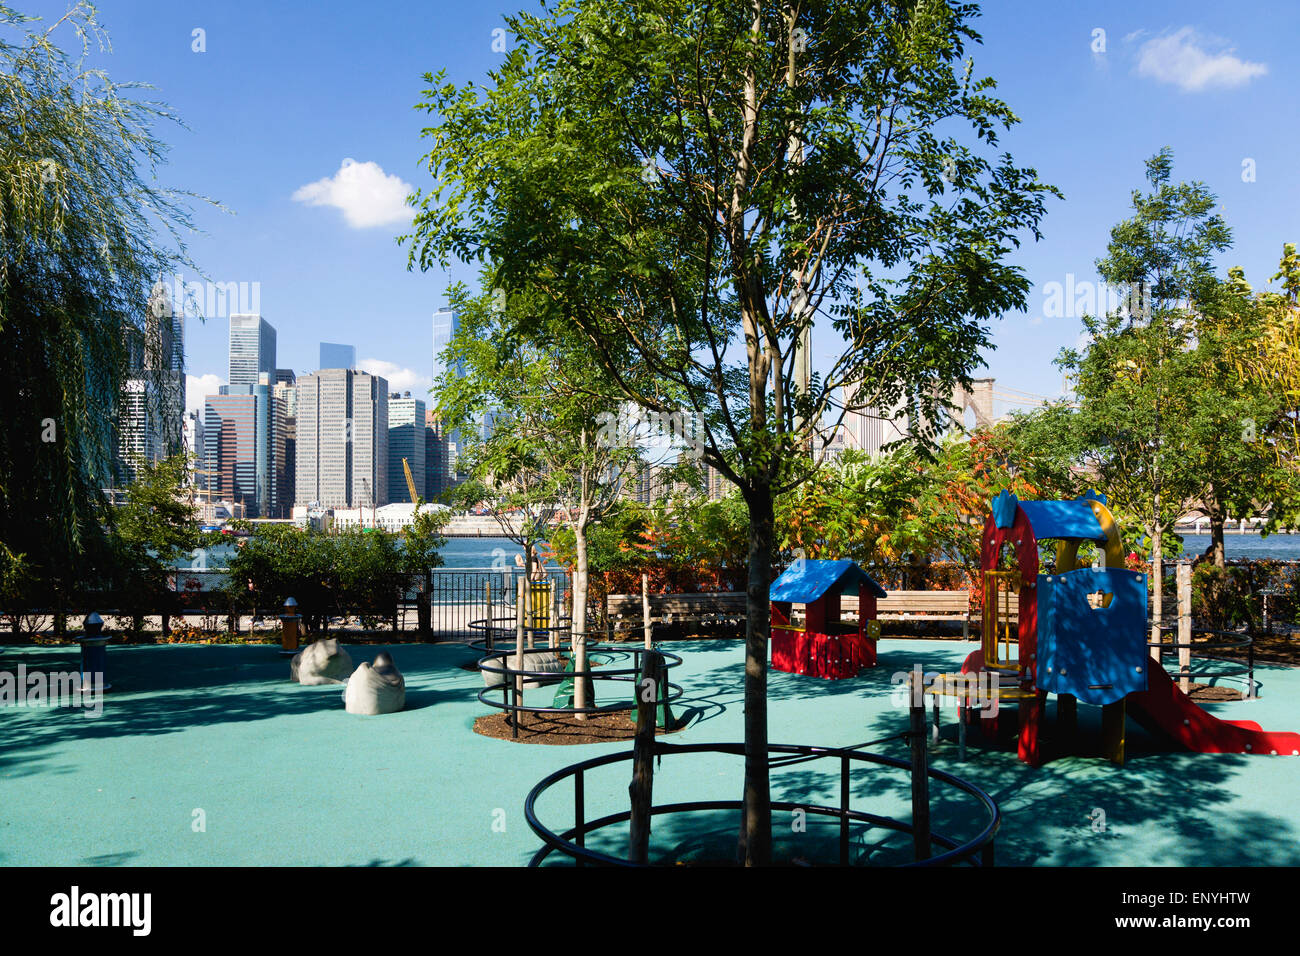 USA, New York, Brooklyn Bridge Park, deserted colourful children's playground by the Fulton Ferry Landing with - Stock Image